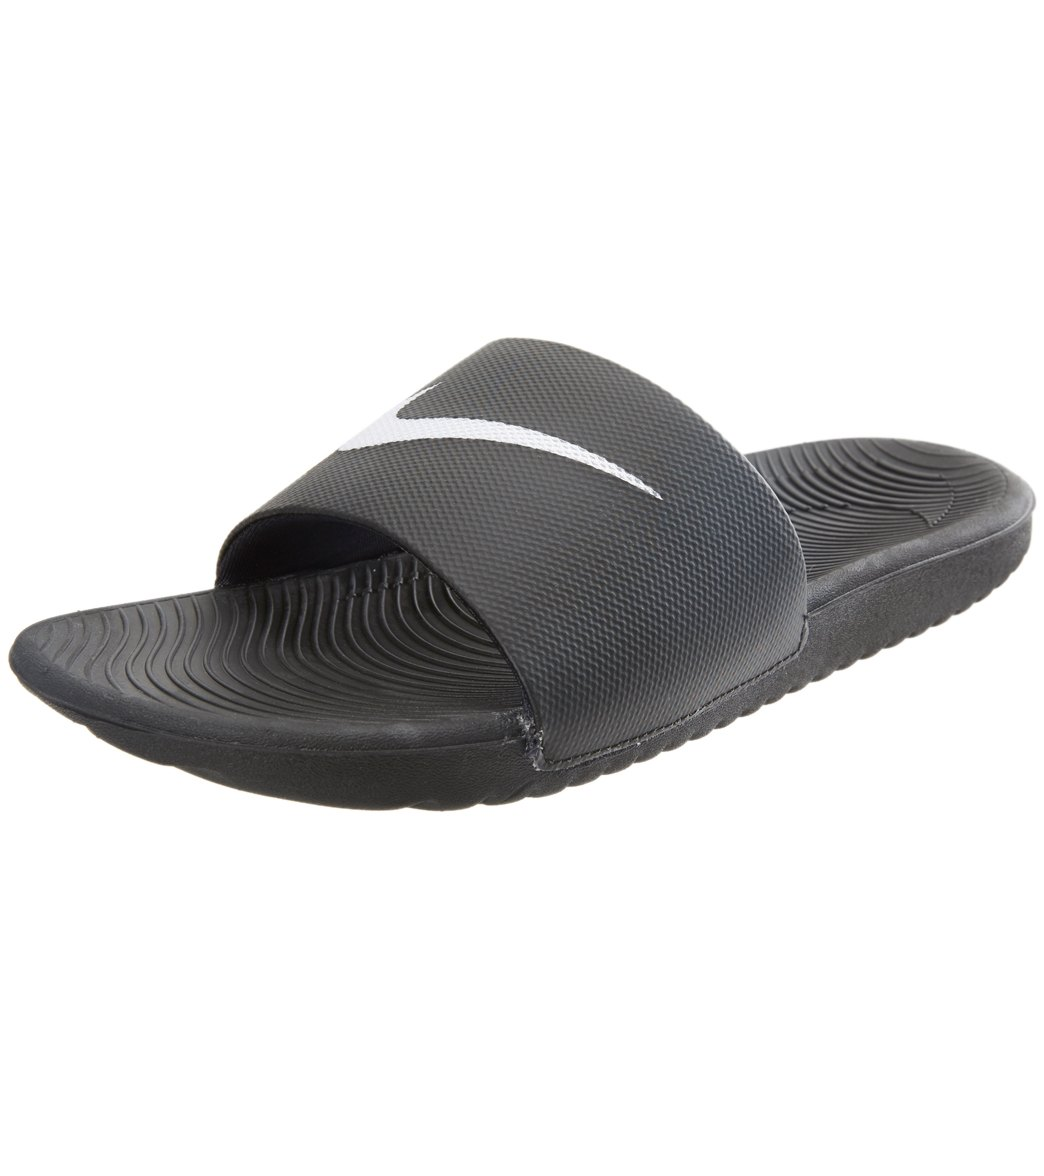 Nike Men's Kawa Slides Sandals - Black 13 - Swimoutlet.com